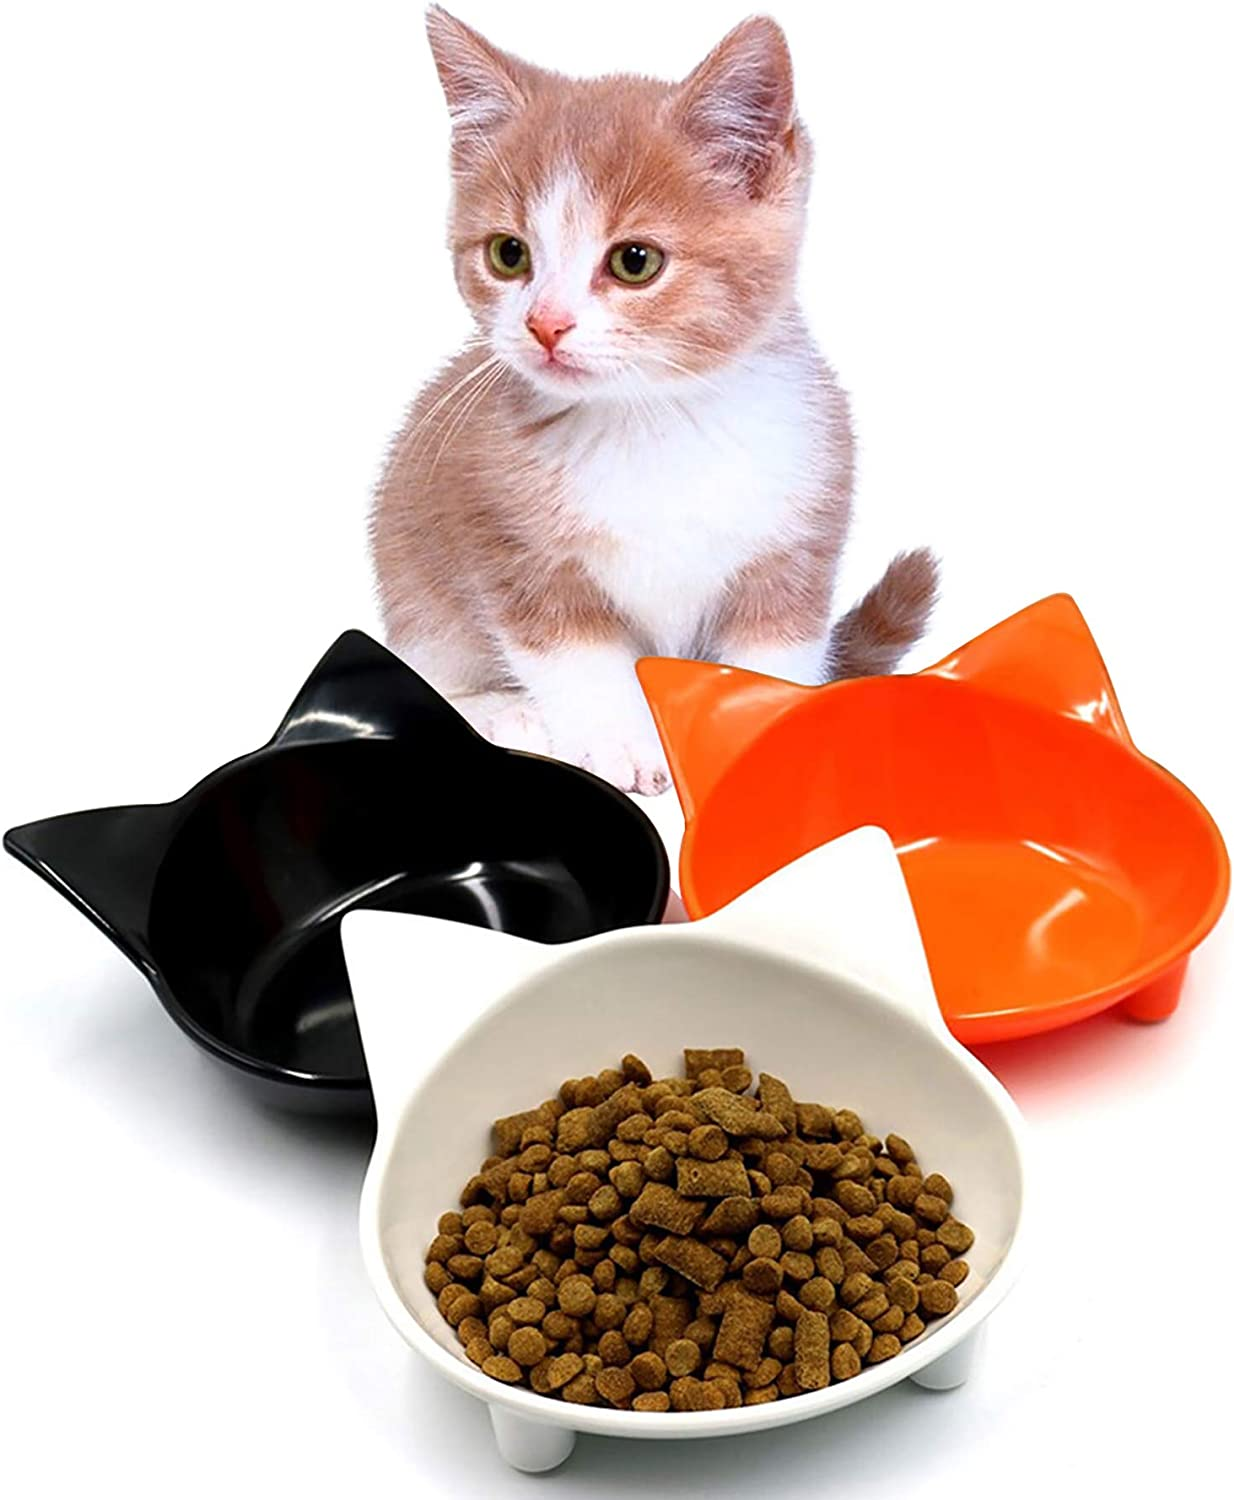 Yesland Cat Bowl, 3 Pack Shallow Cat Food & Water Bowls, Non Slip Pet Feeding Dish to Stress Relief of Whisker Fatigue Pet Bowl of Dogs Cats Rabbits